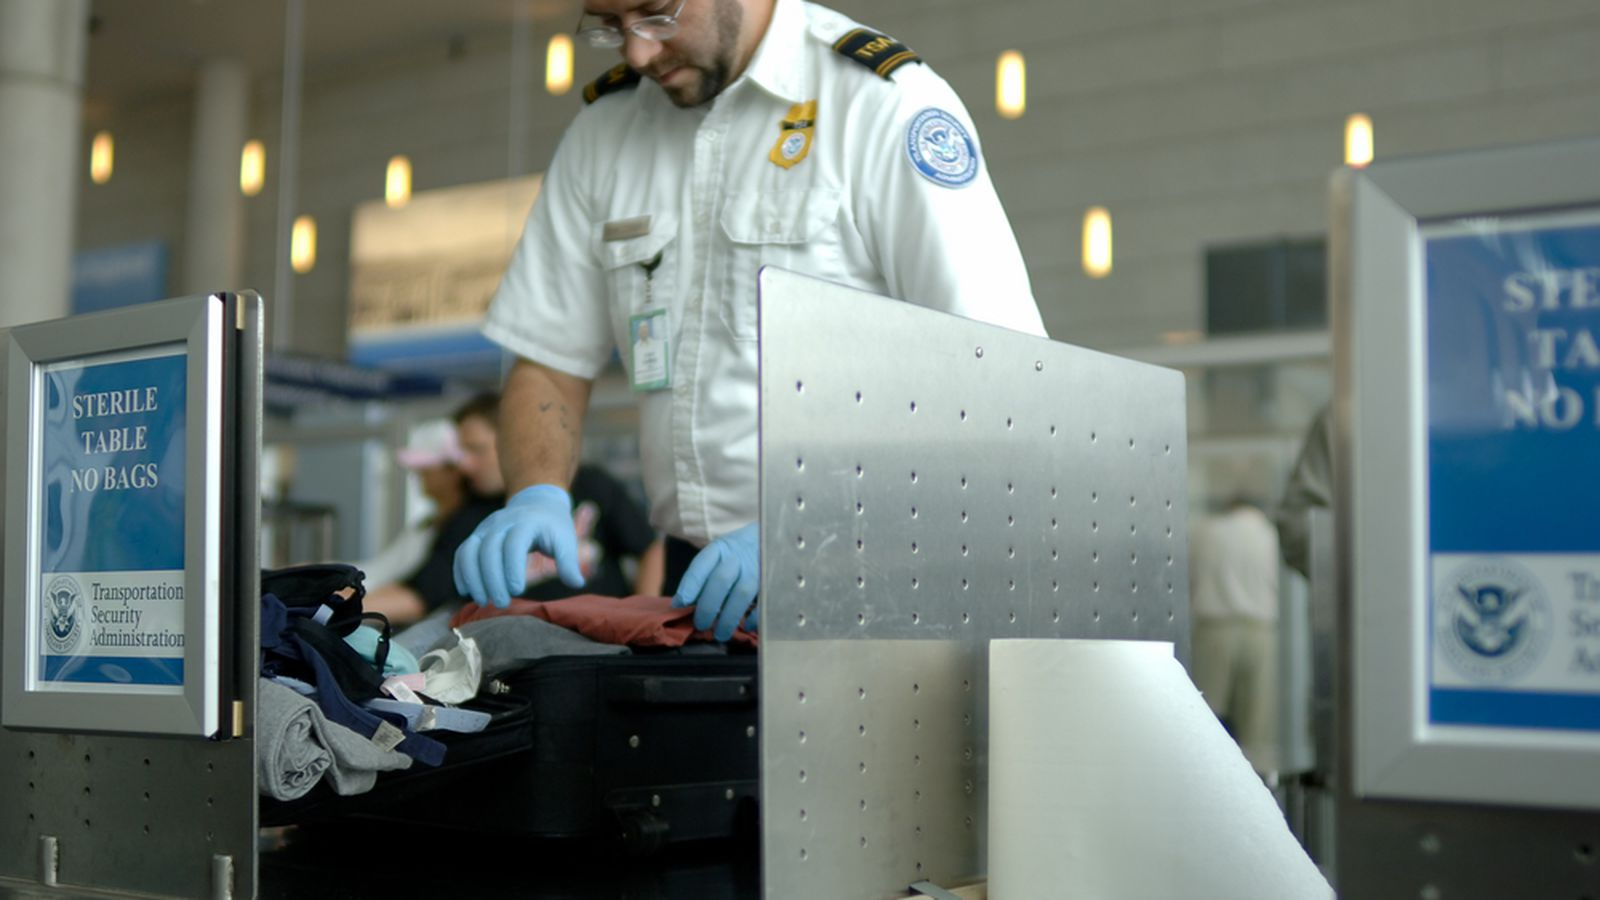 Electronics that belong to people flying into the US will get closer scrutiny starting today